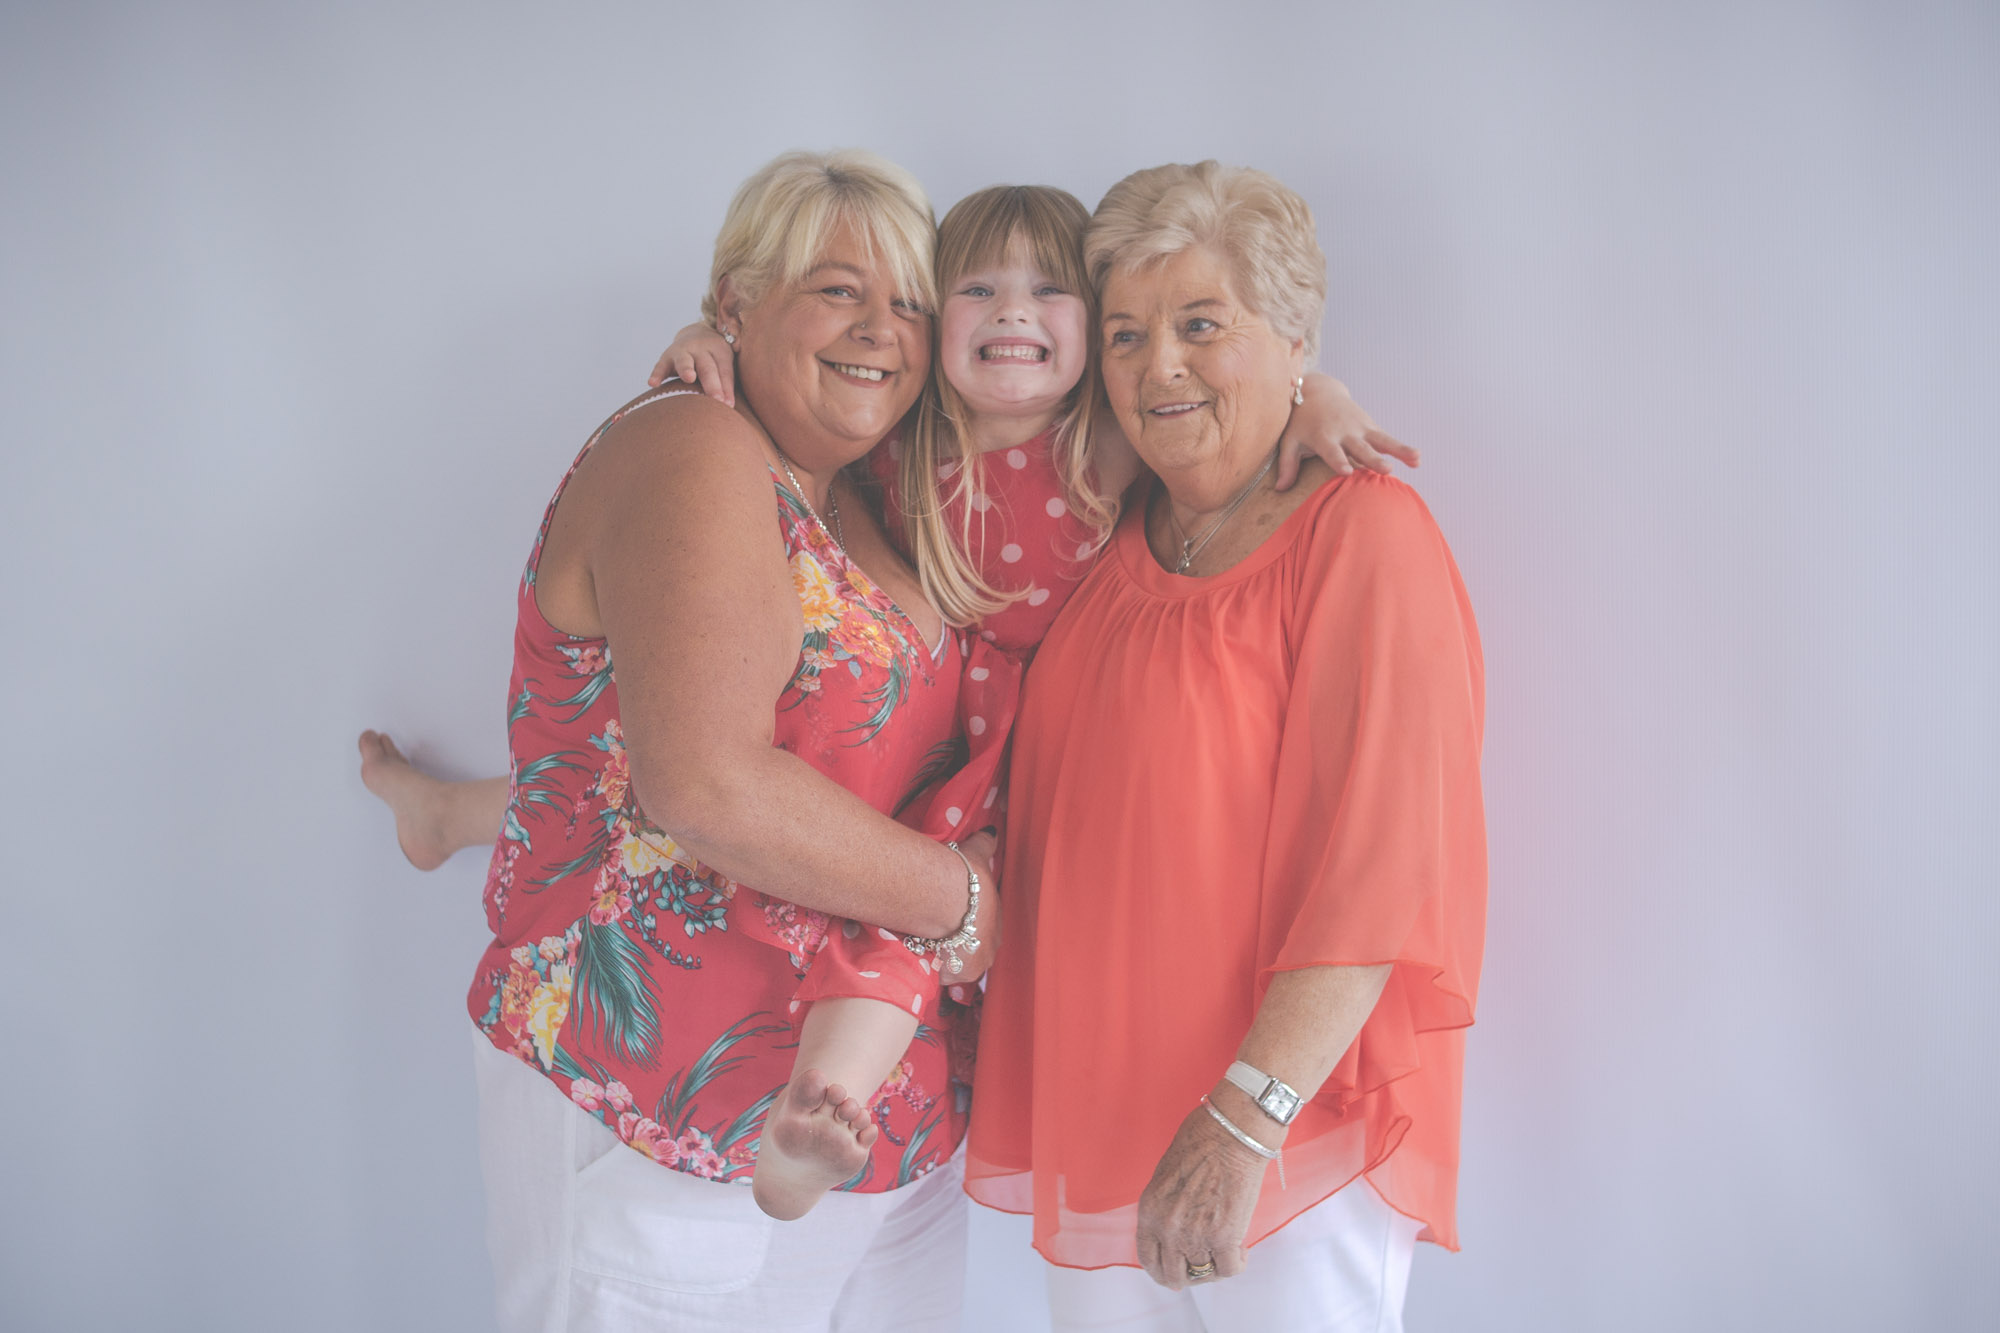 makeover-pamper-portraits-photos-keighley-skipton-bradford-leeds-chicca-photography-3.jpg